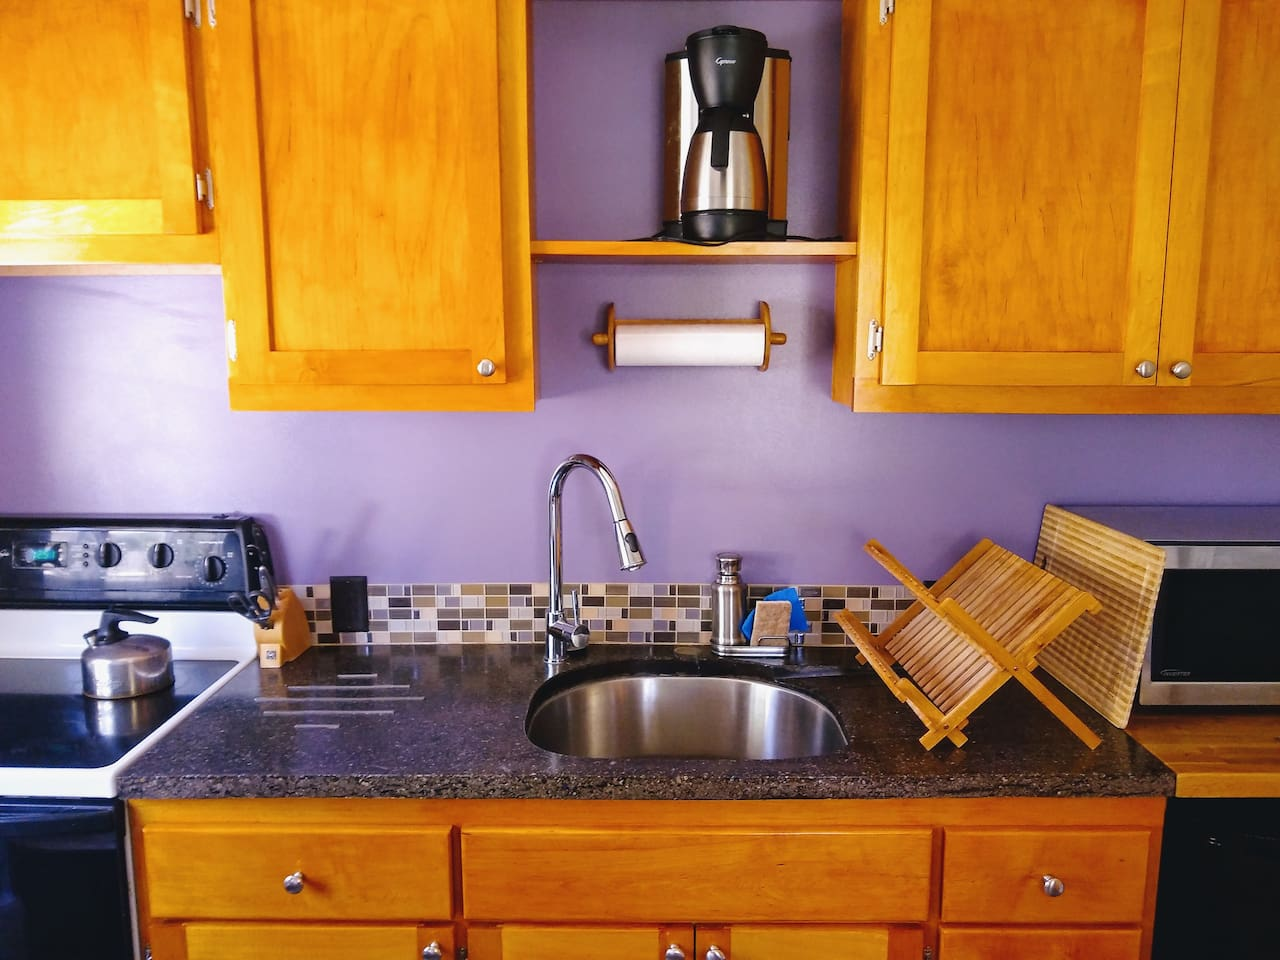 The kitchen has everything you need to feel at home.